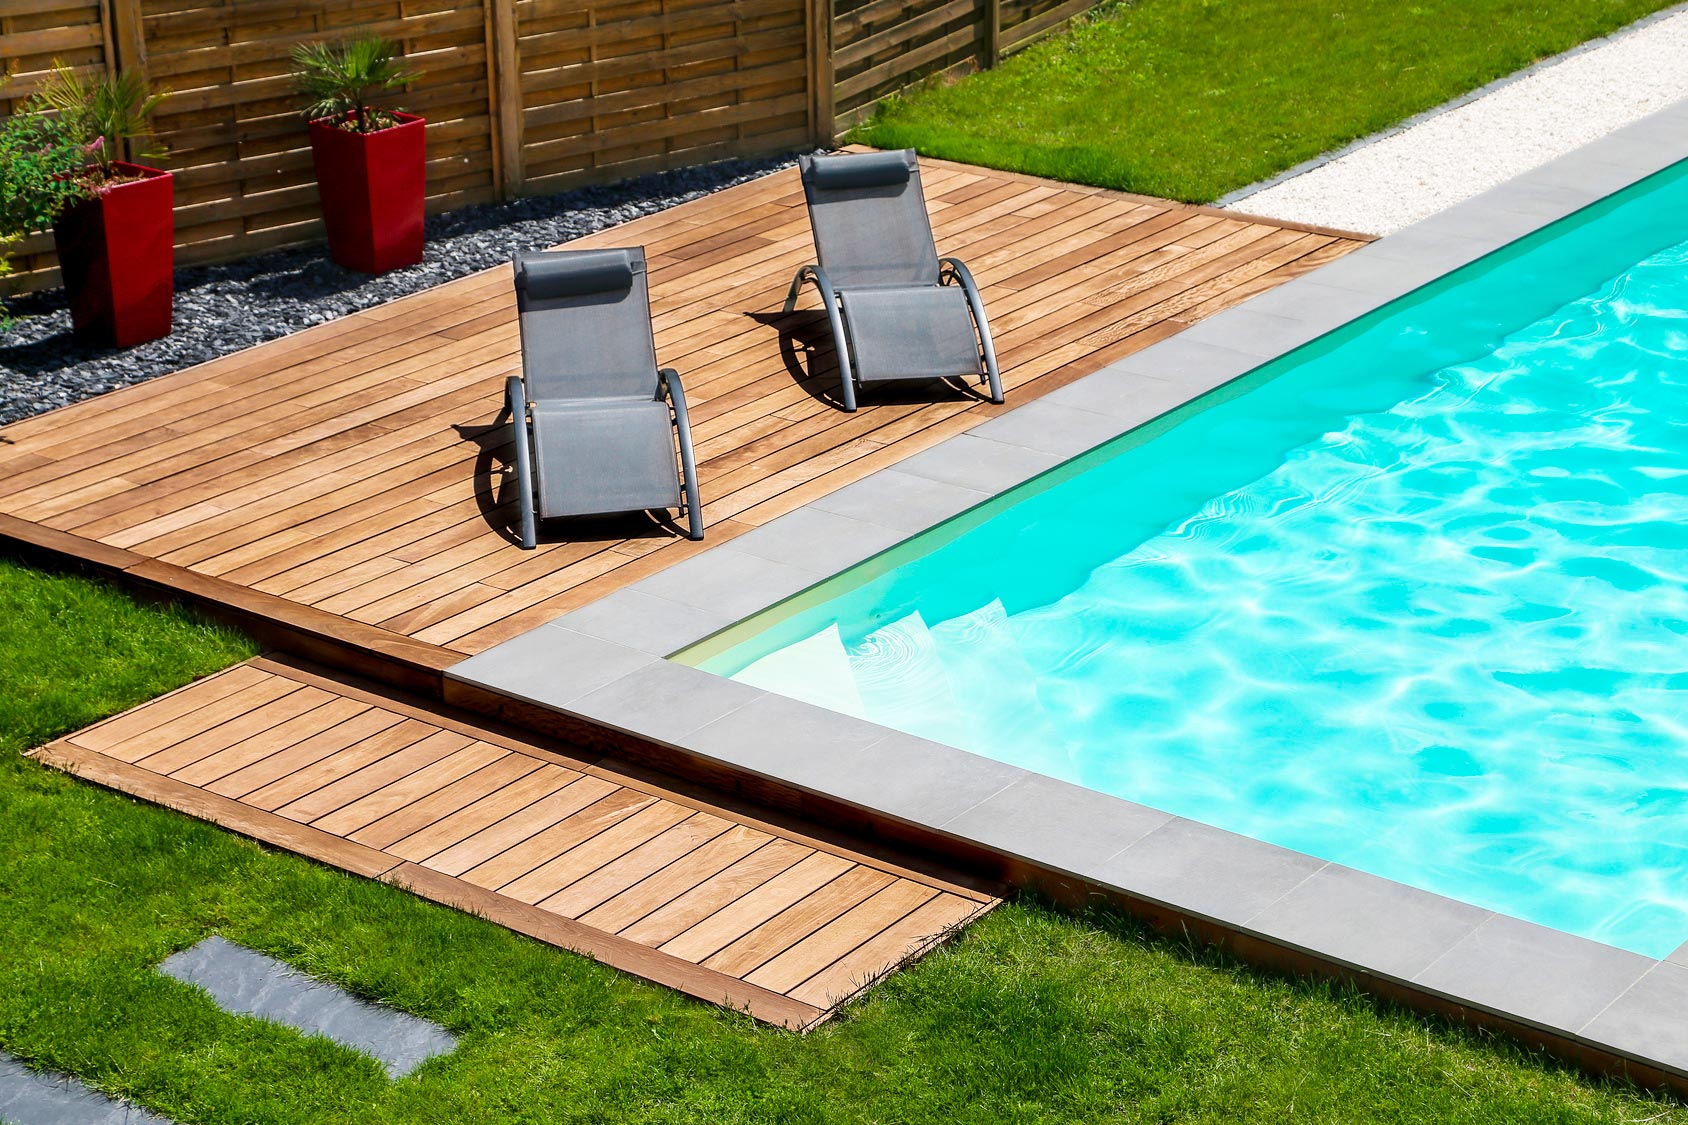 Piscine enterr e contemporaine sur mesure piscines design for Piscine miroir design